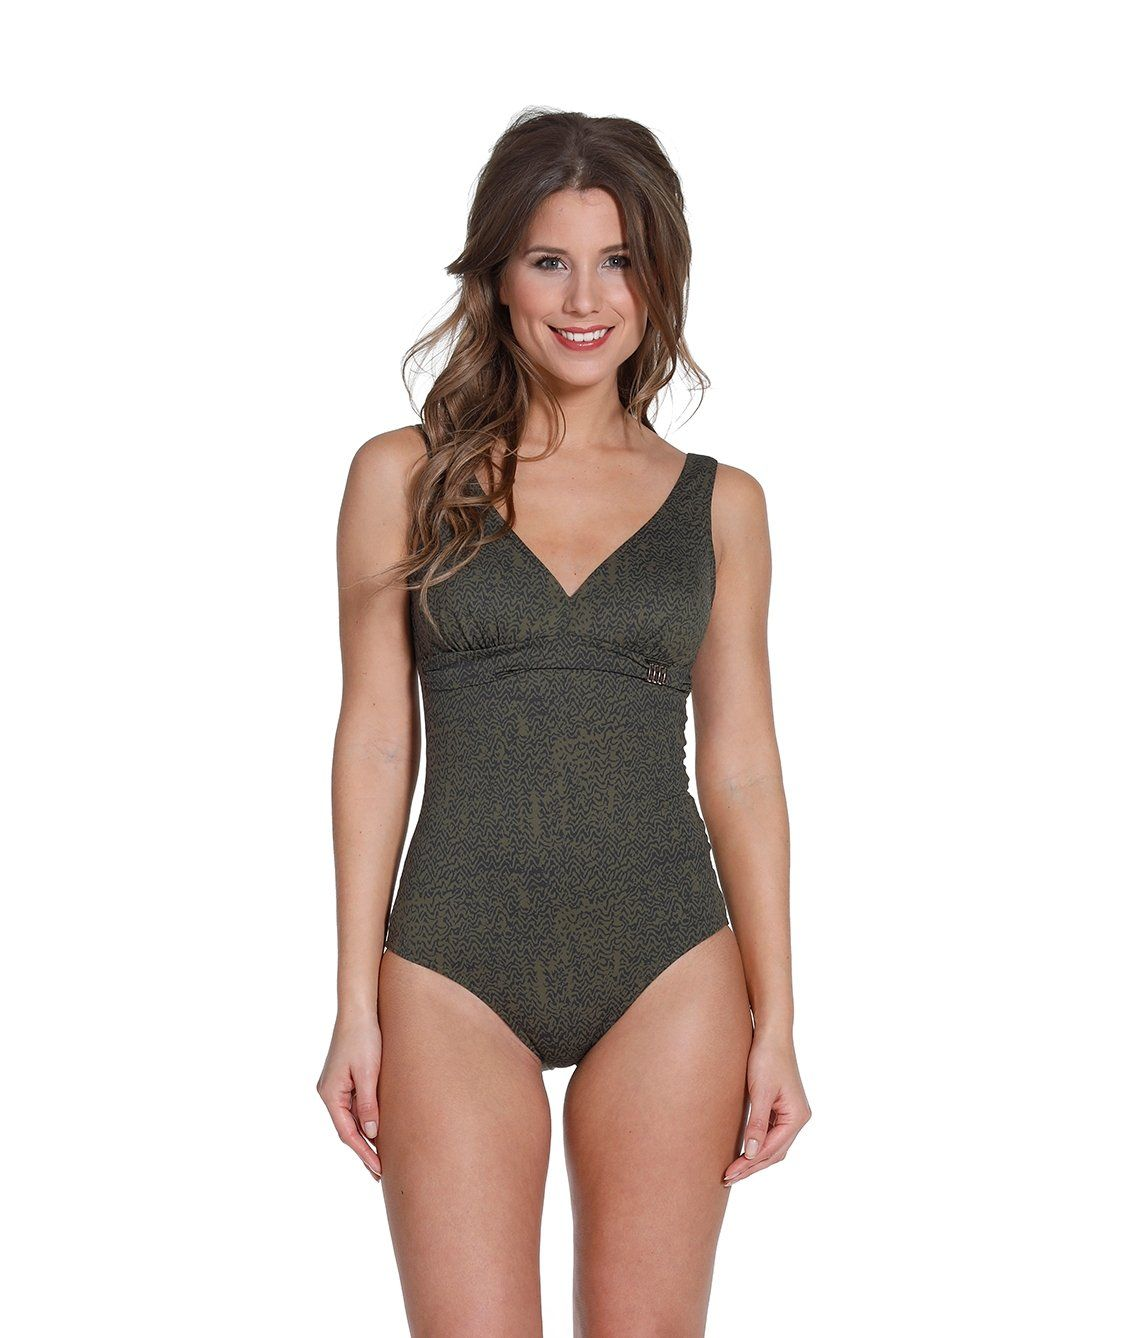 Badpak Livera.Livera Badpak Boa My Own Closet Swimwear One Piece En Fashion